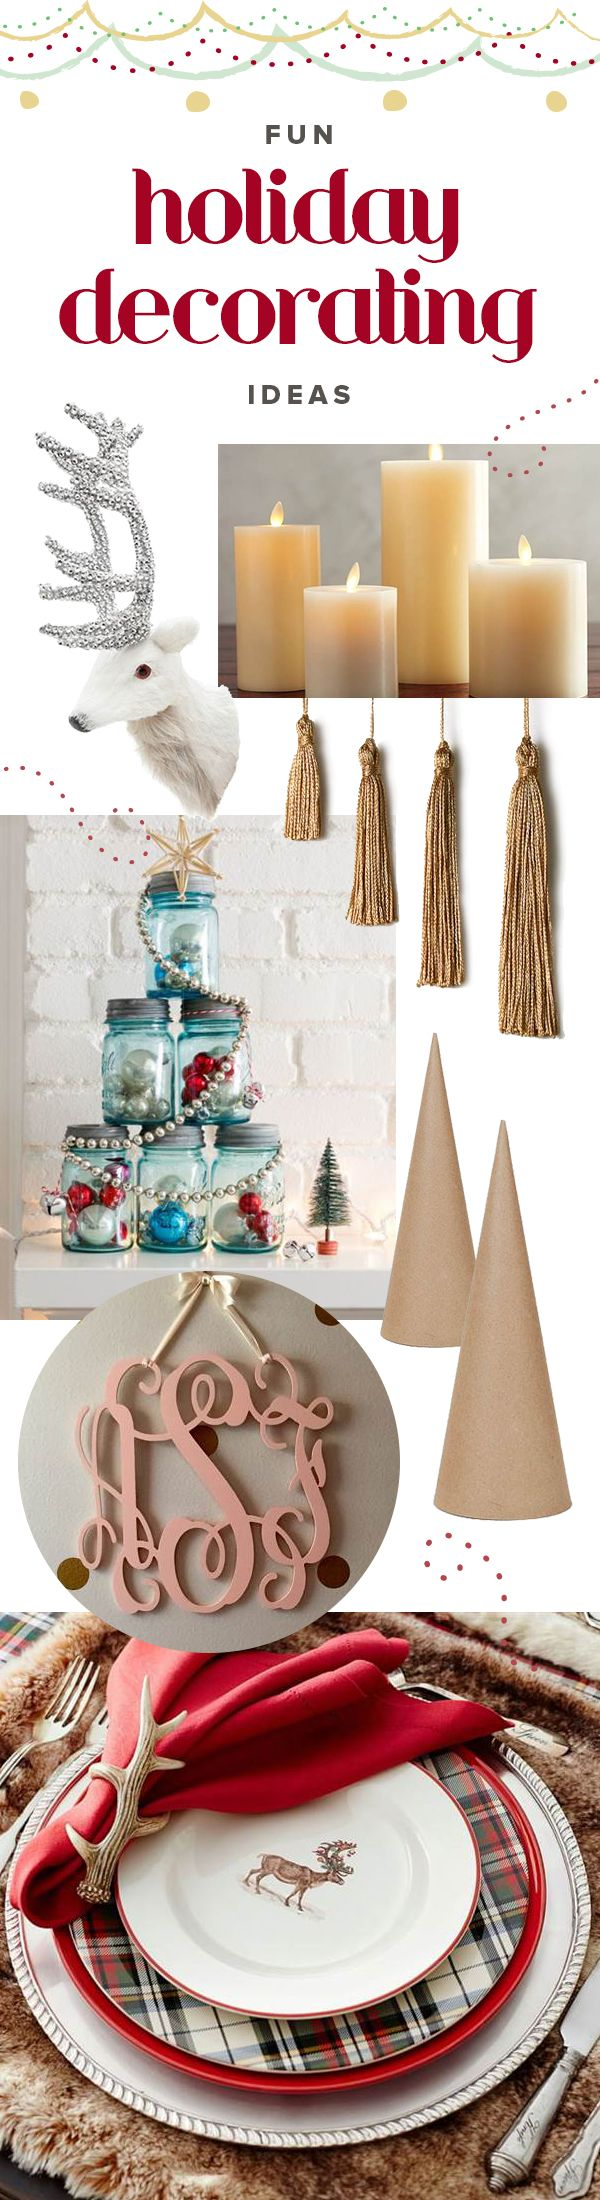 40 best DECK THE HALLS images on Pinterest Christmas ideas Deck